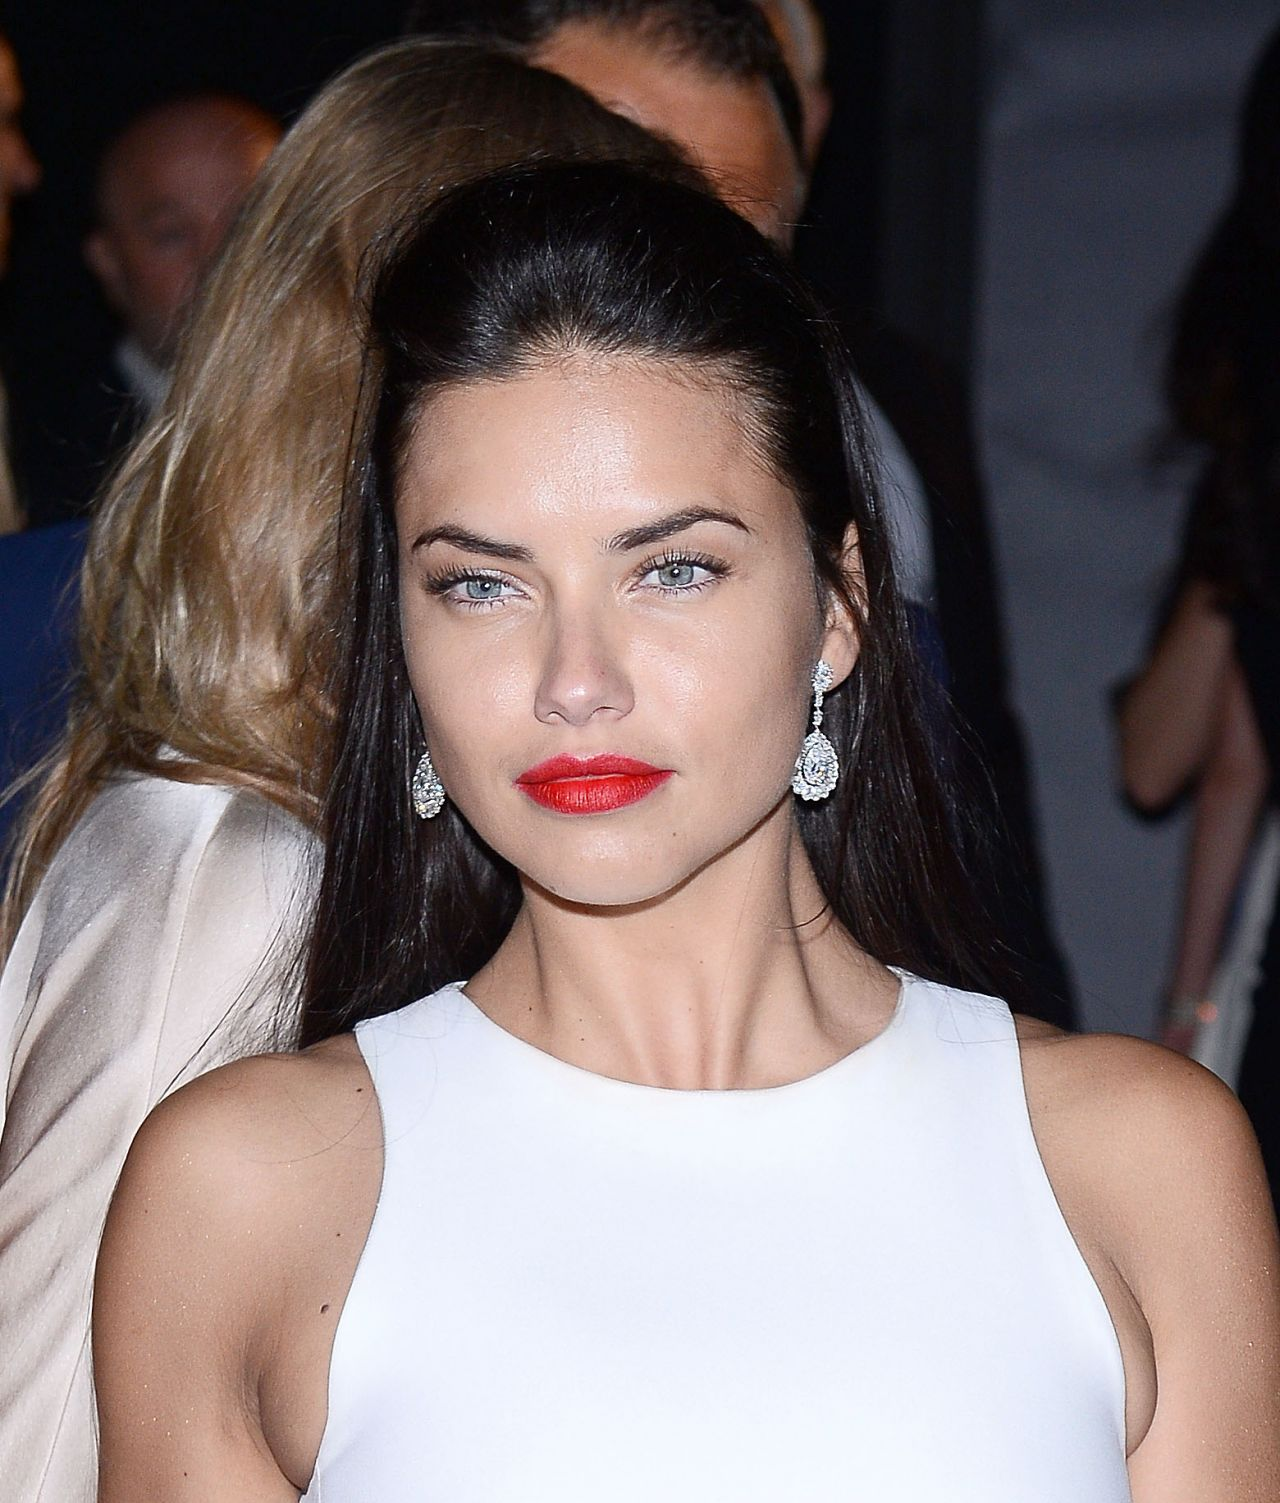 HQ Photos of Victoria's Secret Fashion Show Model Adriana Lima Soiree Chopard Gold Party 2015 Cannes Film Festival